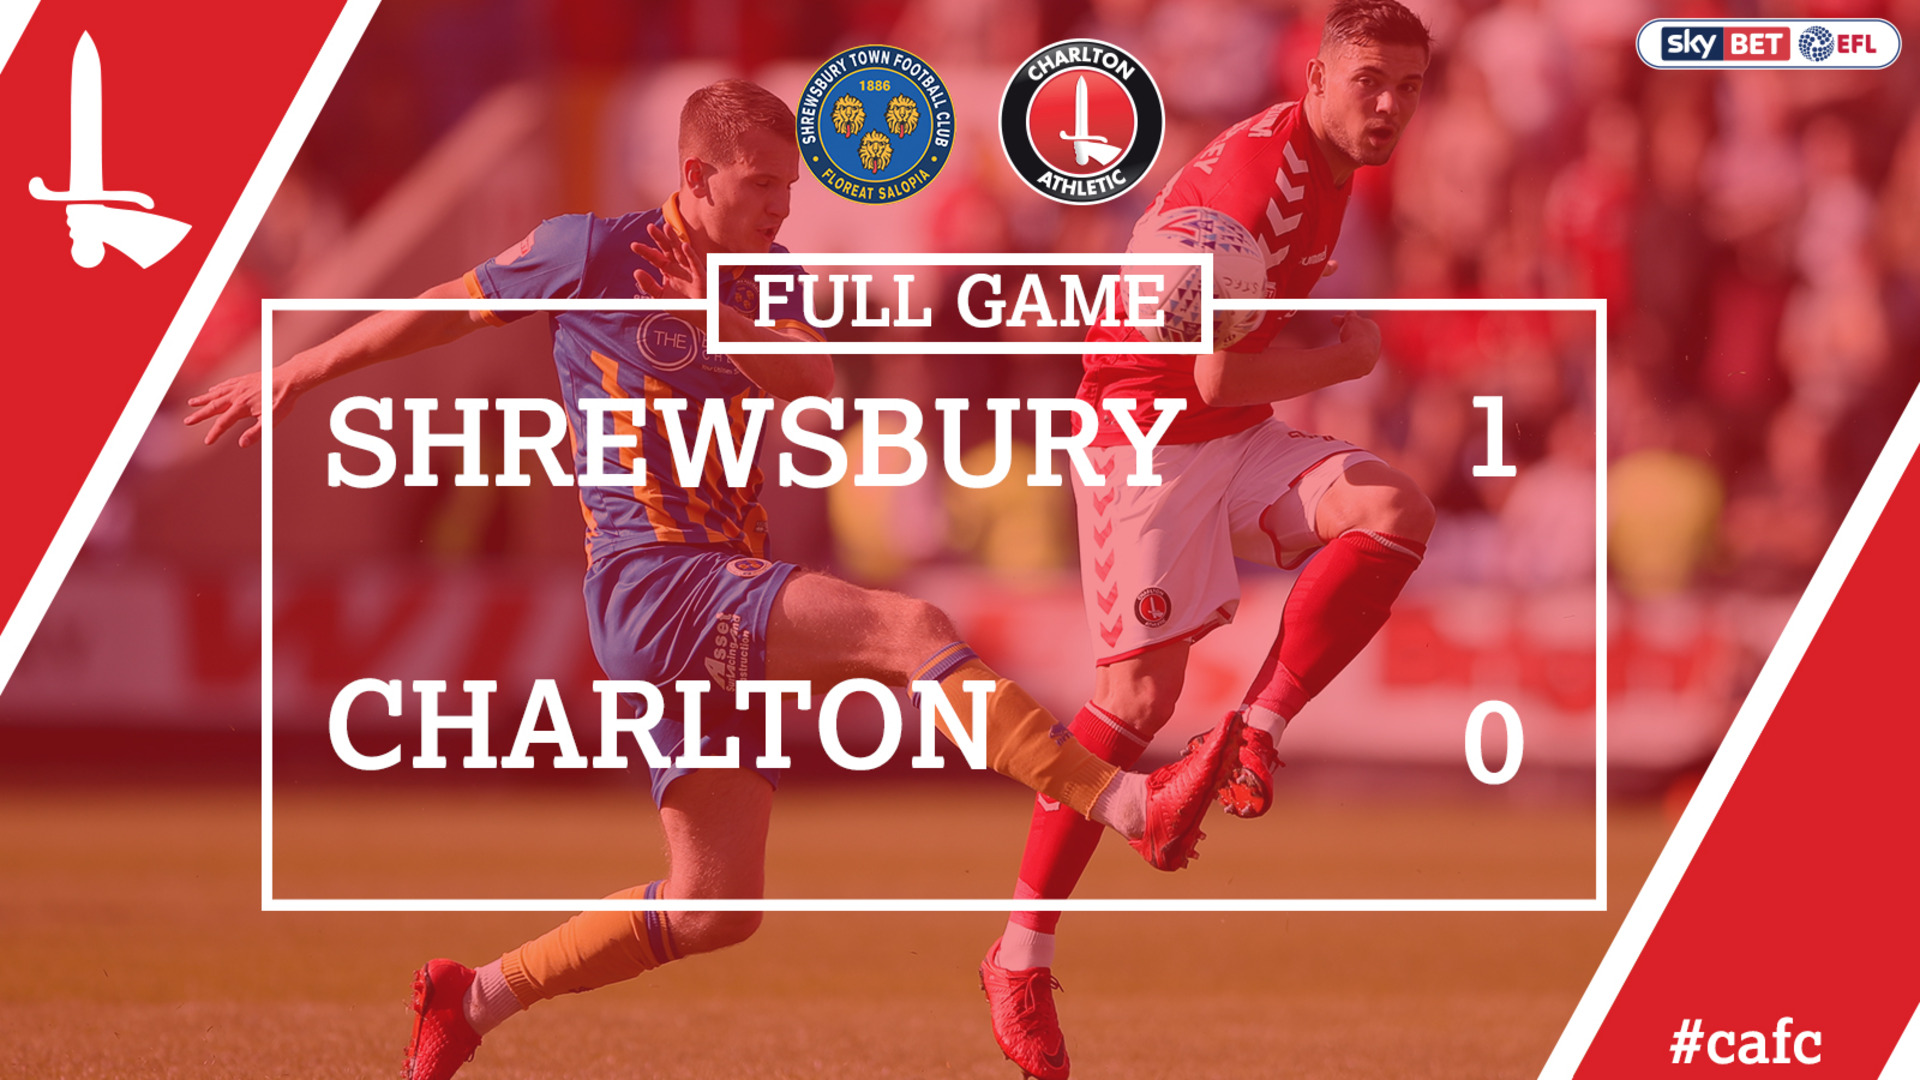 FULL GAME | Shrewsbury 1 Charlton 0 (Play-off Semi Final May 2018)